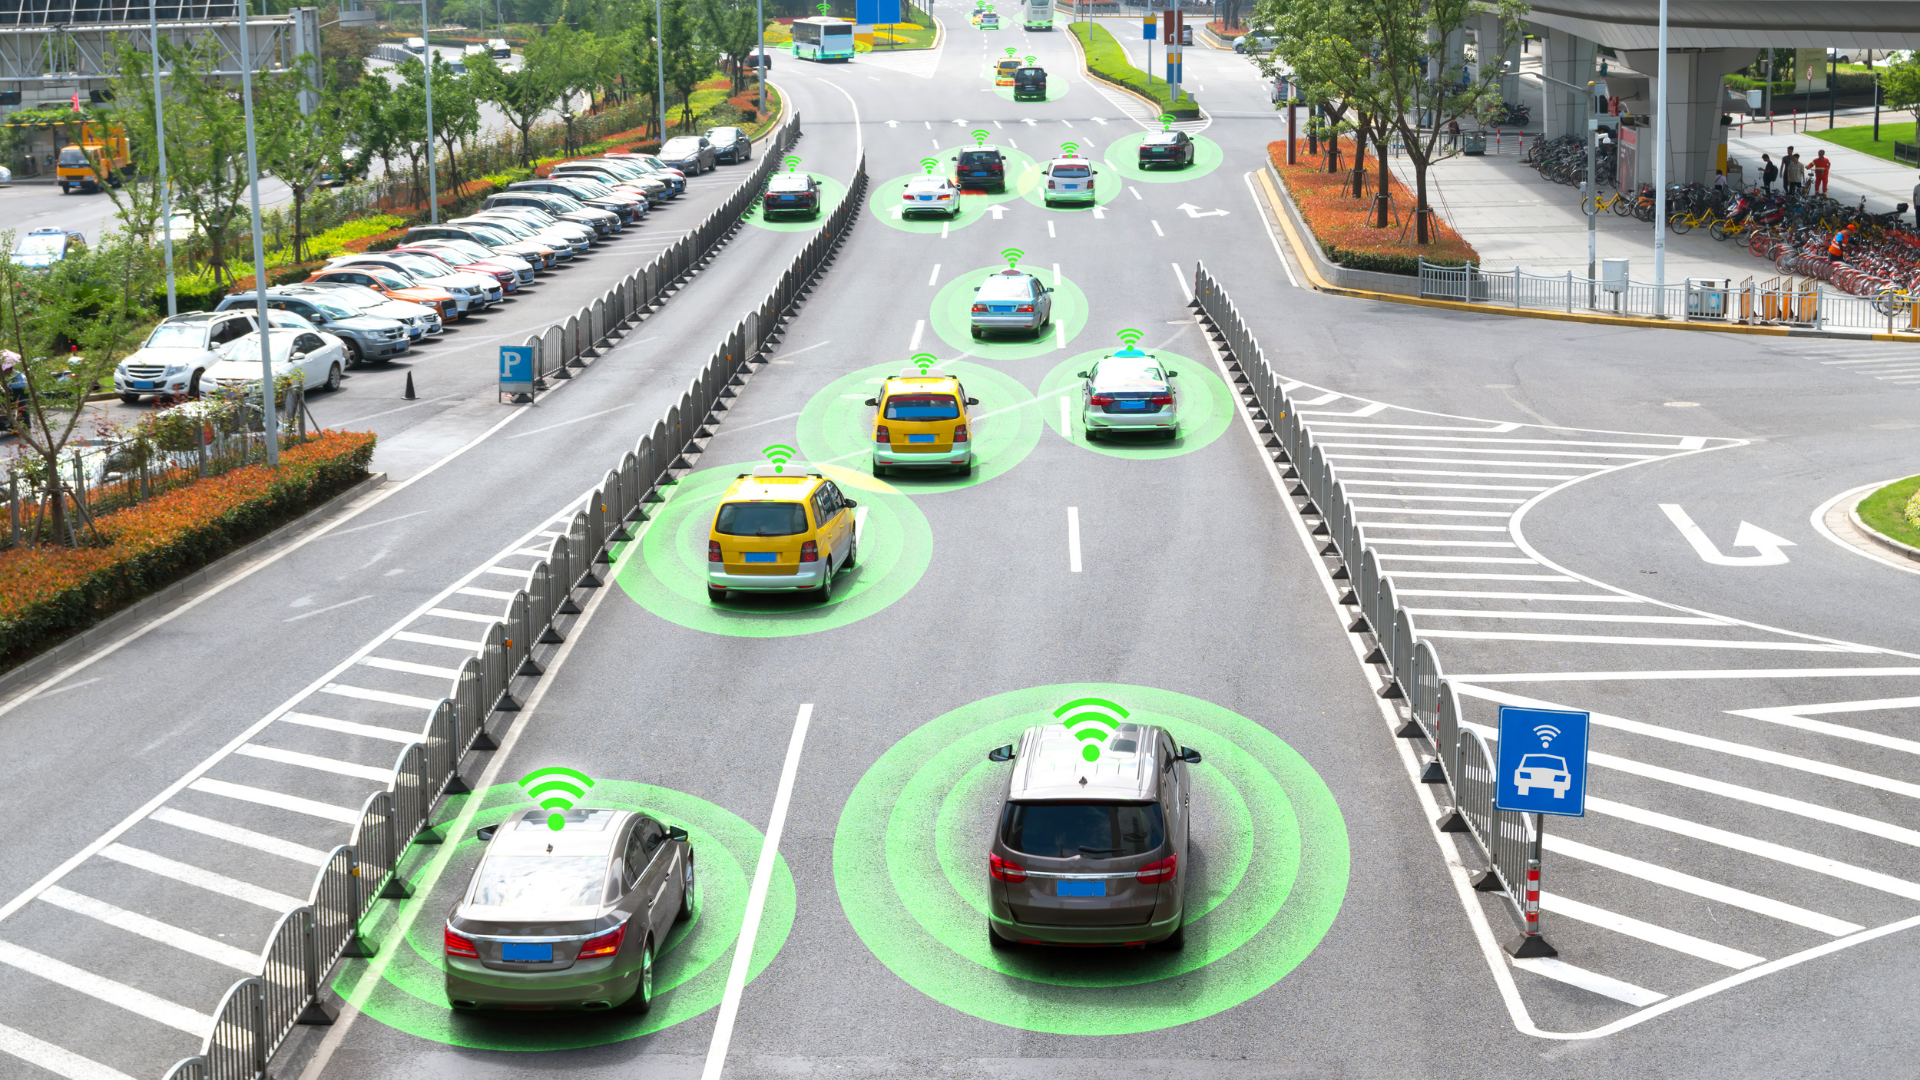 self-driving cars with 5G